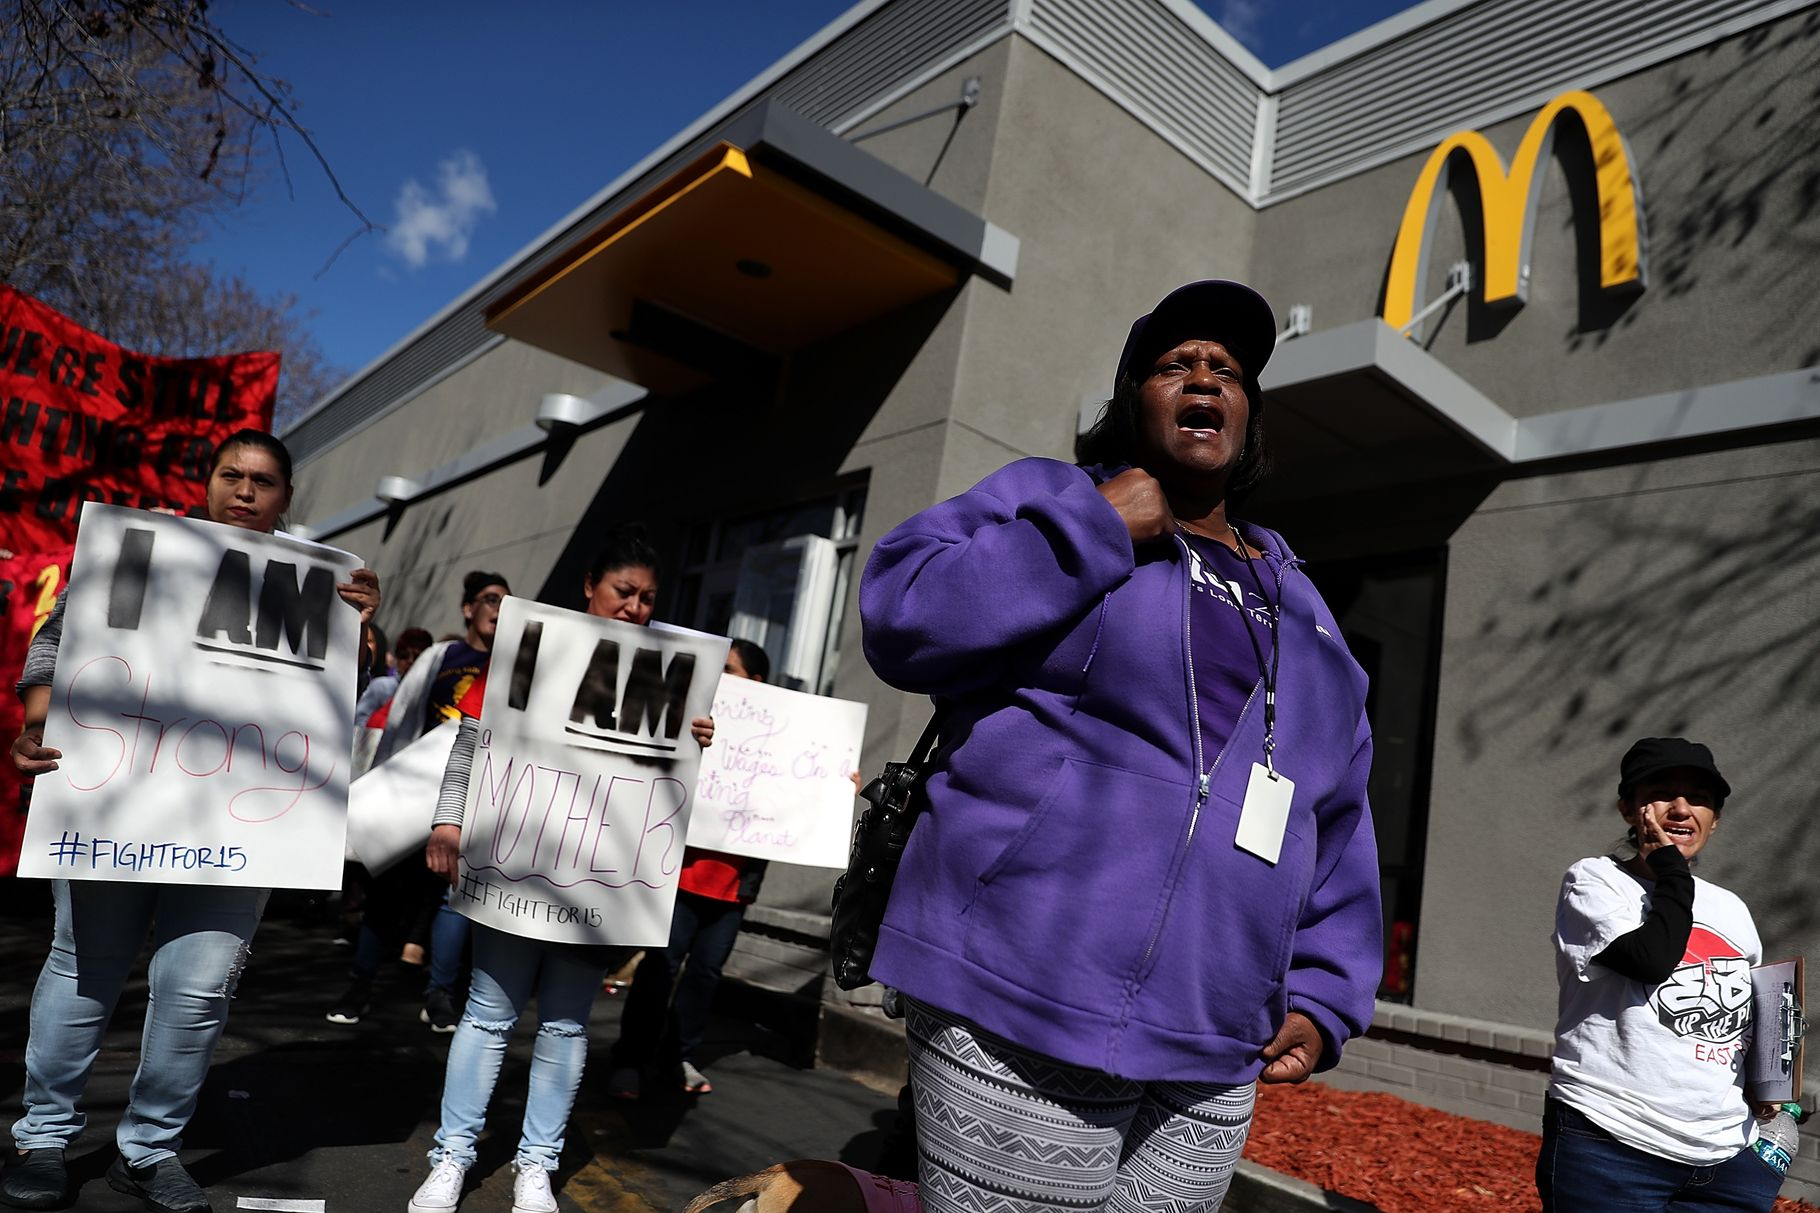 Fast-food workers and union members carry signs as they stage a protest outside of a McDonald's restaurant on February 12, 2018, in Oakland, California. Justin Sullivan/Getty Images